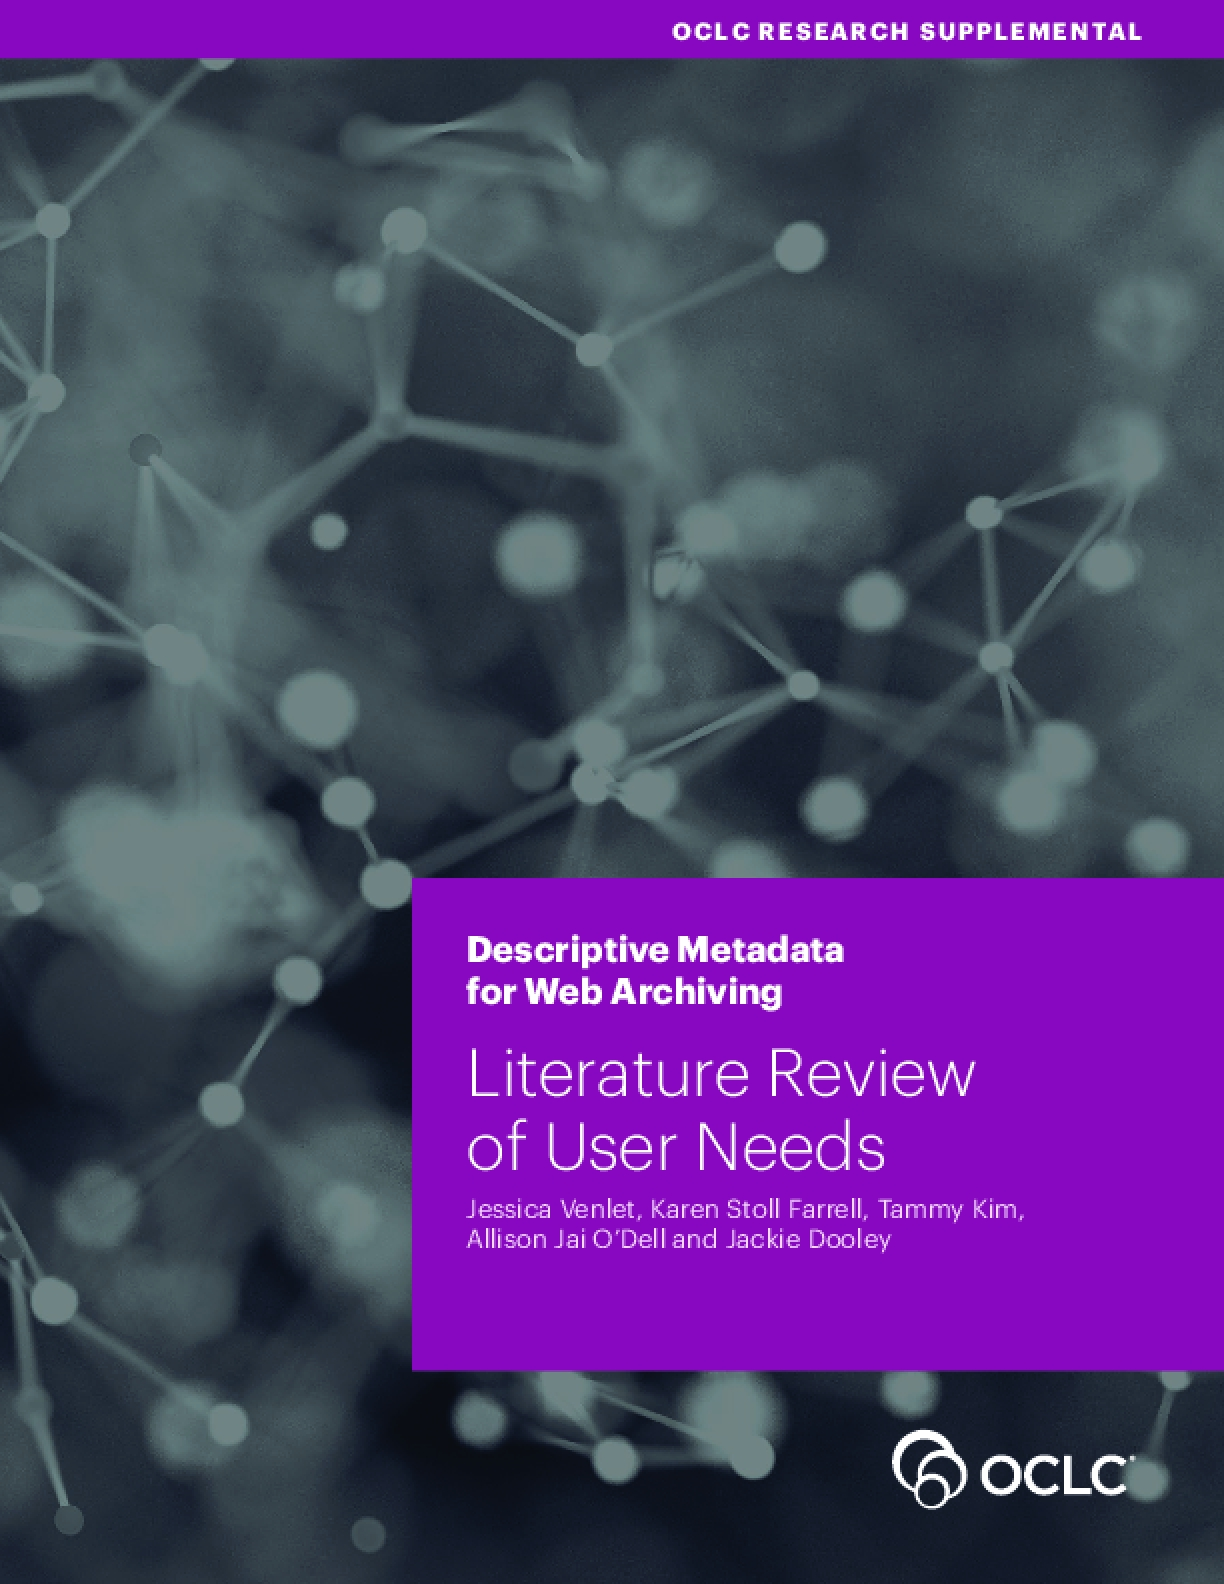 Descriptive Metadata for Web Archiving: Literature Review of User Needs